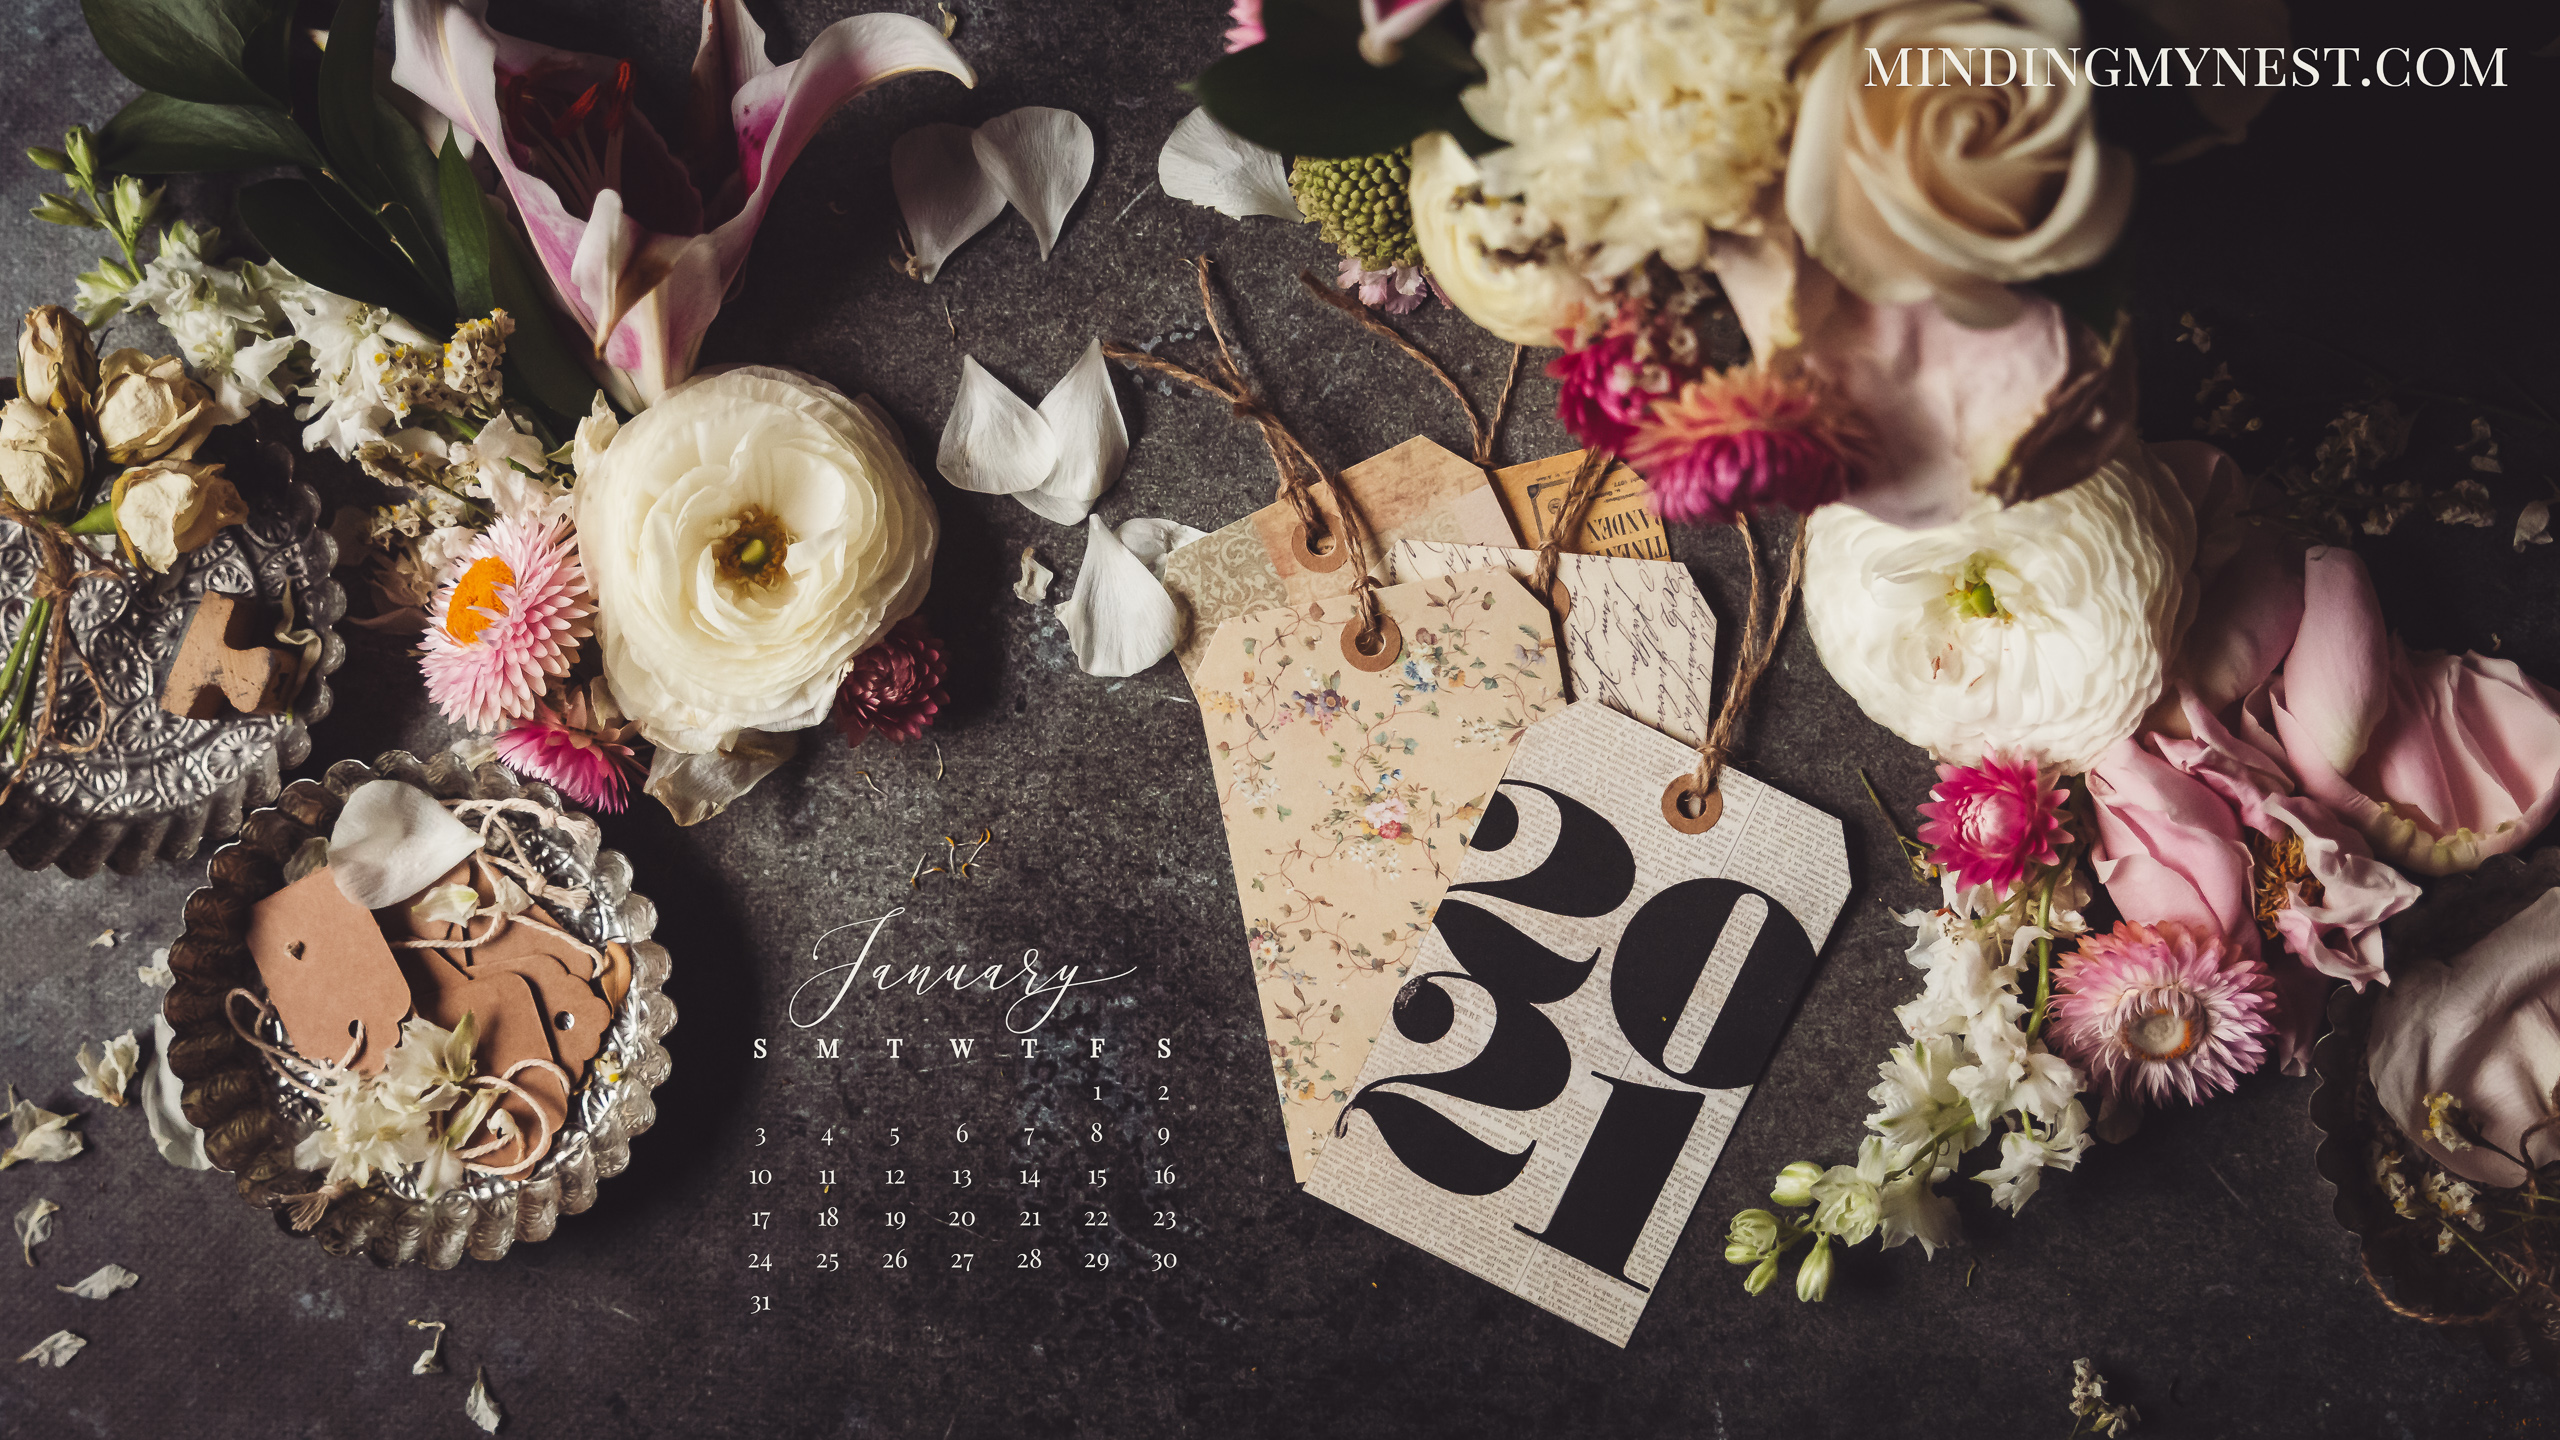 January 2021 Desktop Calendar 2021 Desktop & Device Calendars   minding my nest